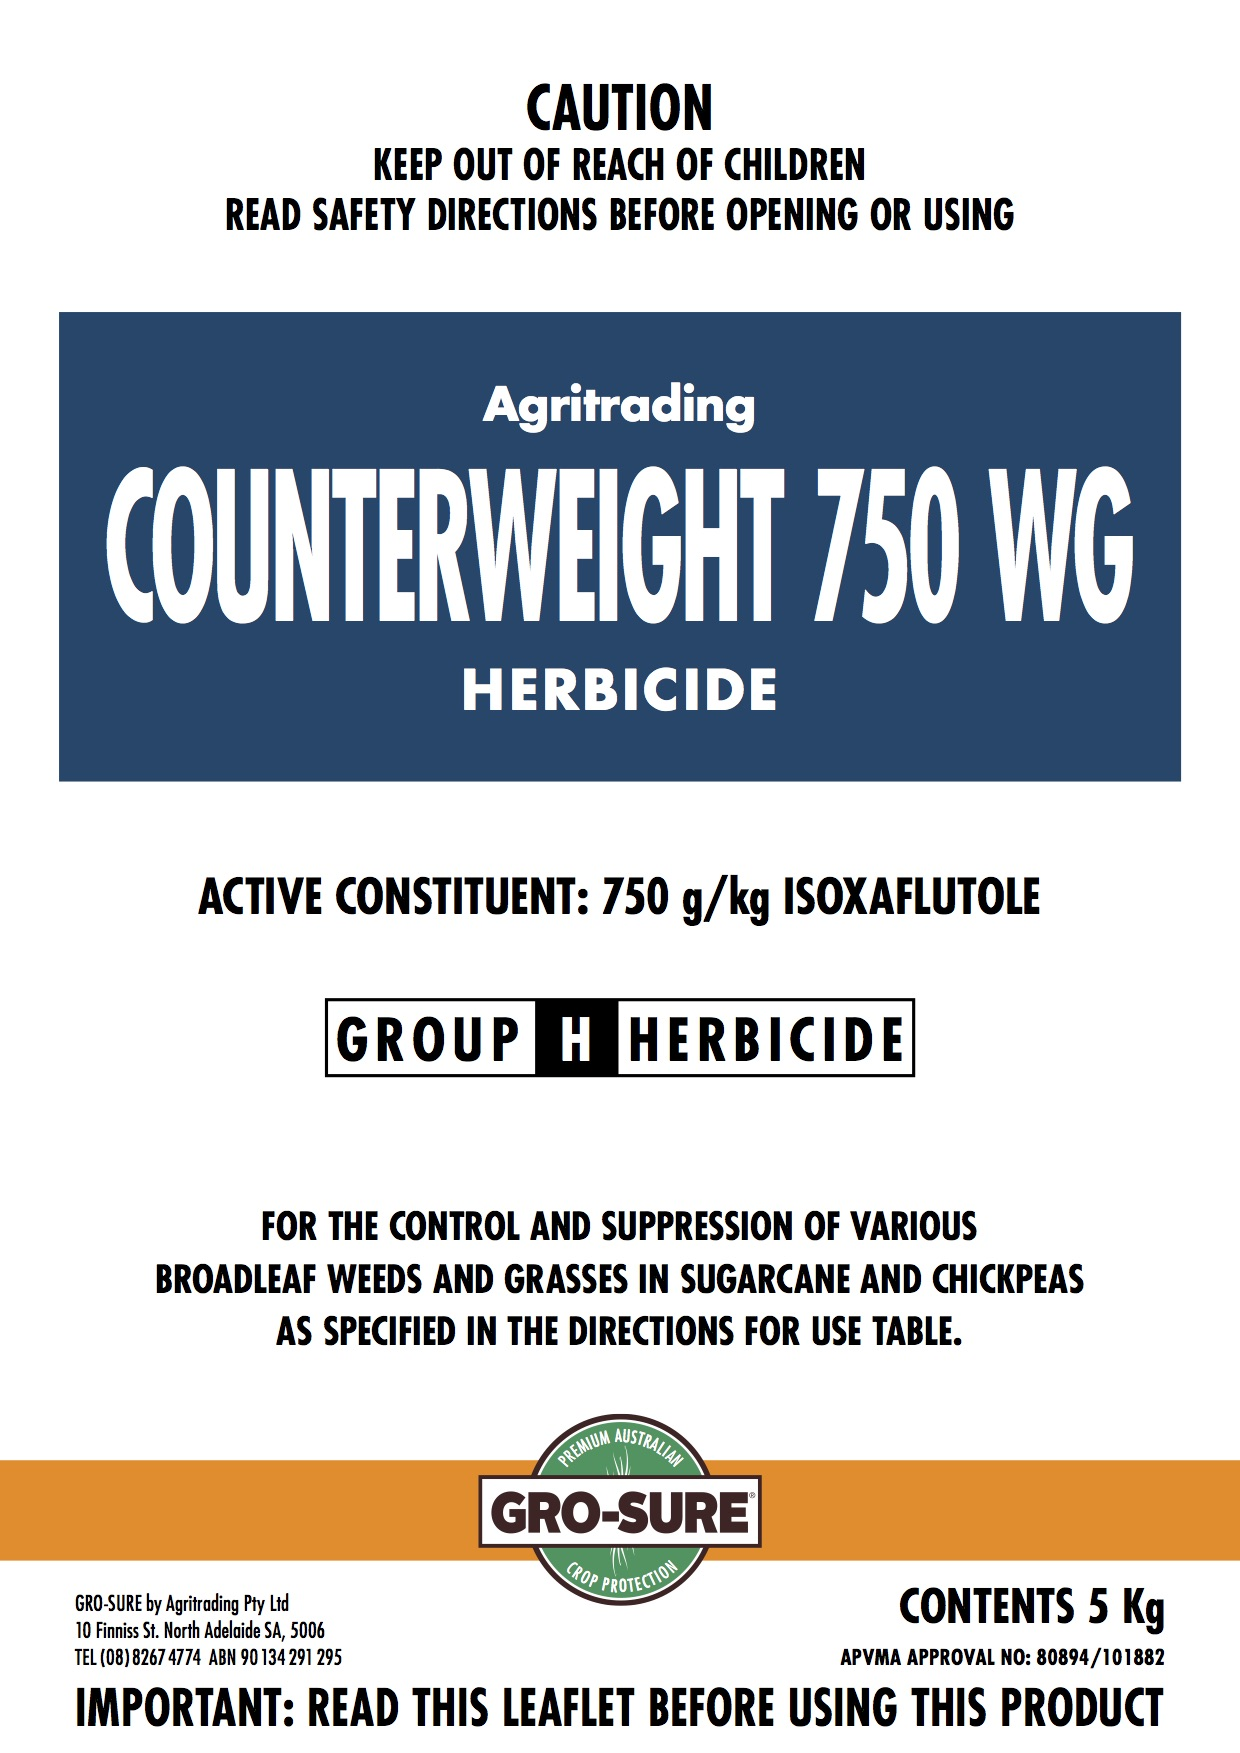 Counterweight 750 Web Label copy.jpg